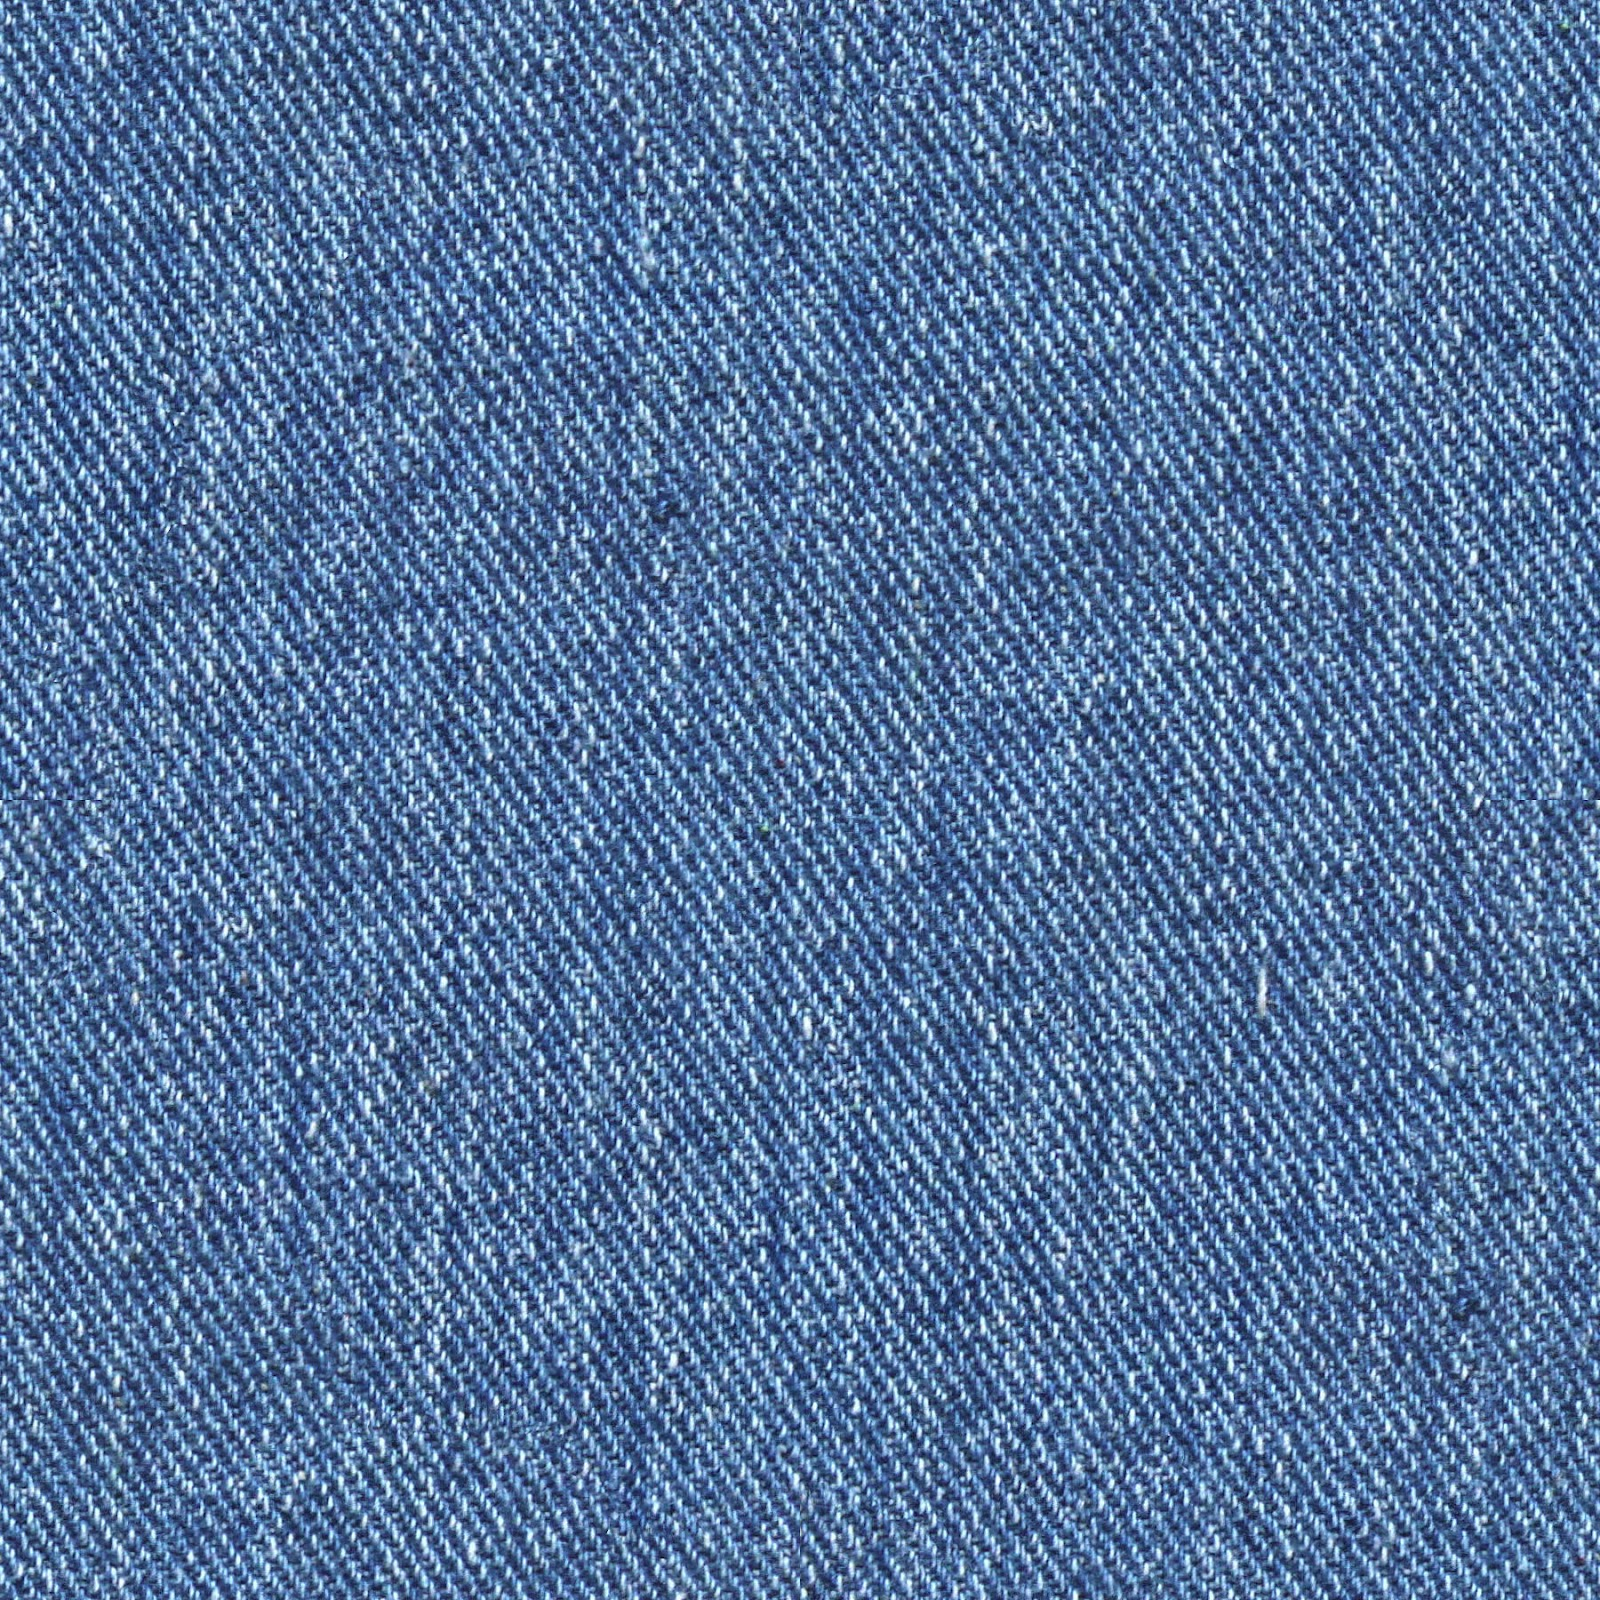 High Resolution Seamless Textures Free Seamless Fabric Textures